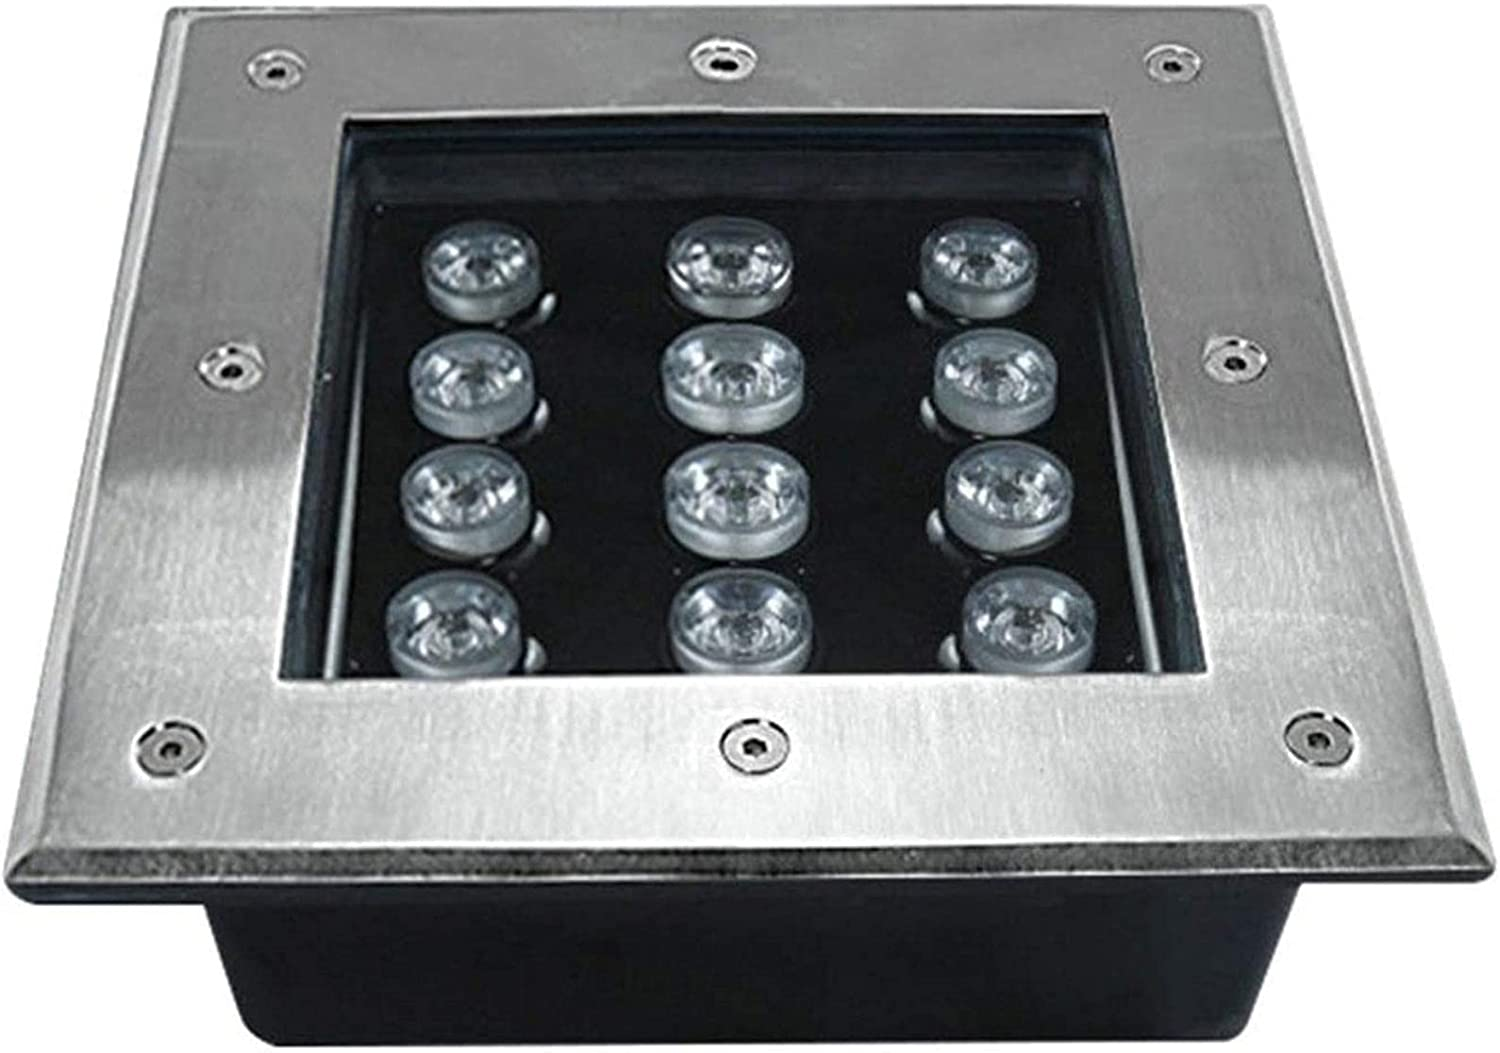 MWKLW 12W 12V 24V Choice Low Voltage Light LED in Outdoor Purchase Well Ground